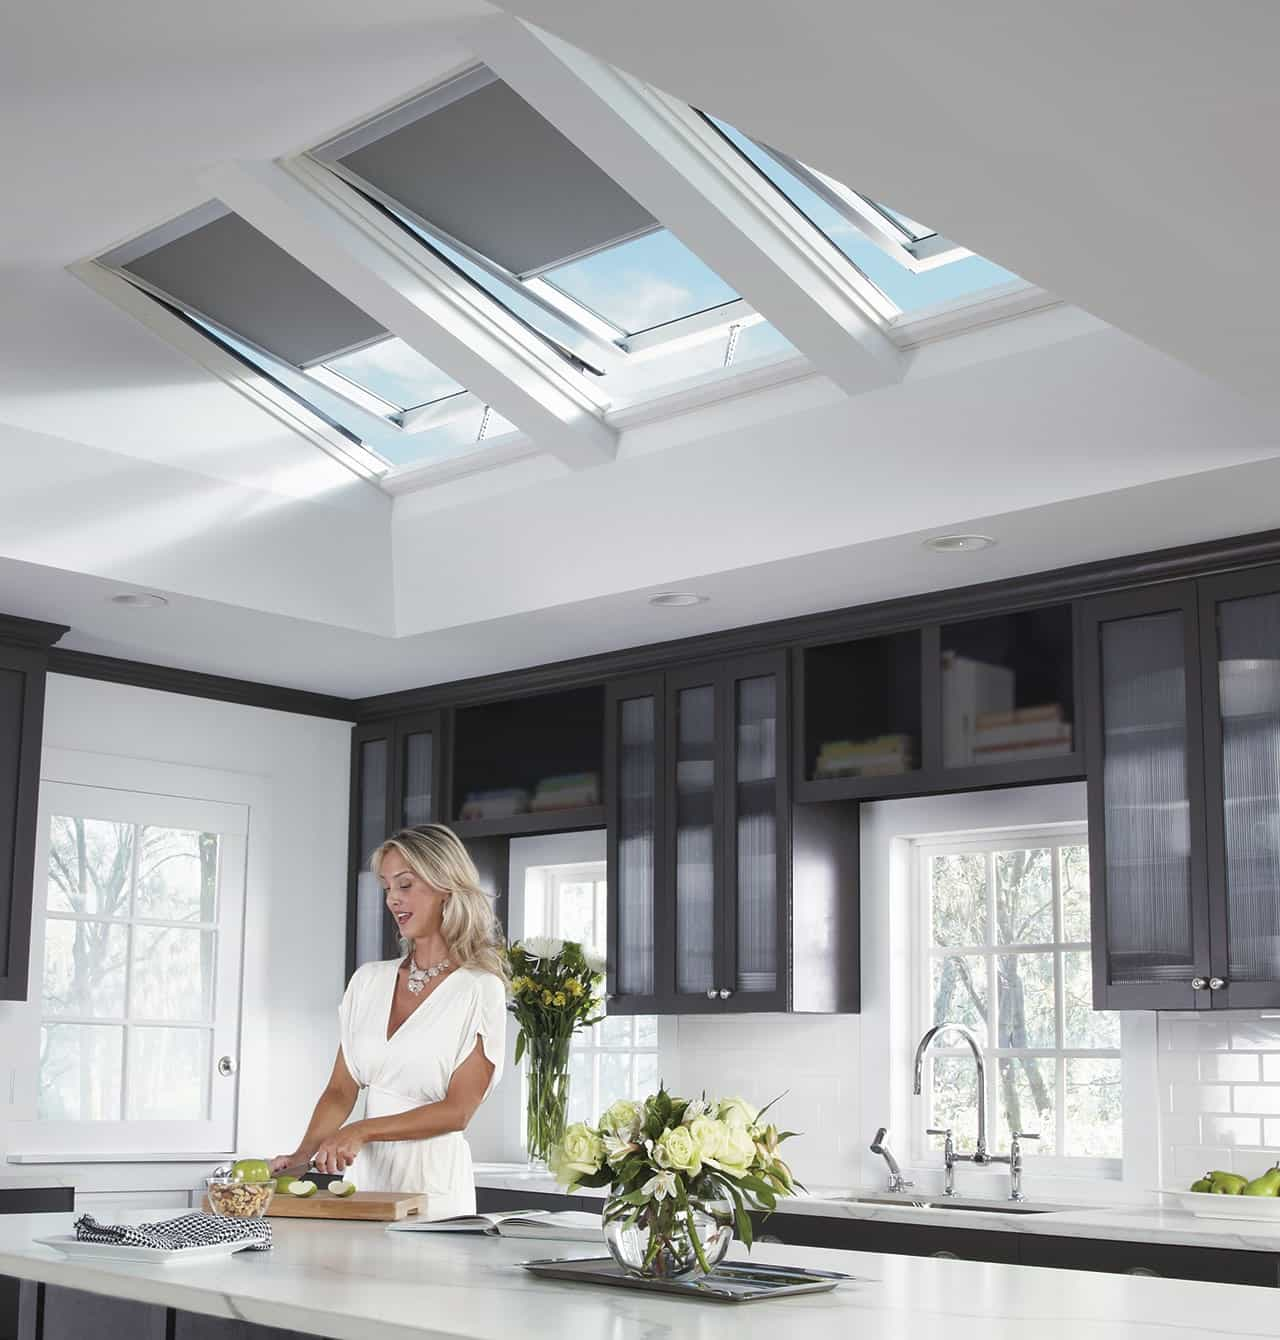 Modern Solar Blockout Blinds For Modern Kitchen Interior (Image 18 of 25)